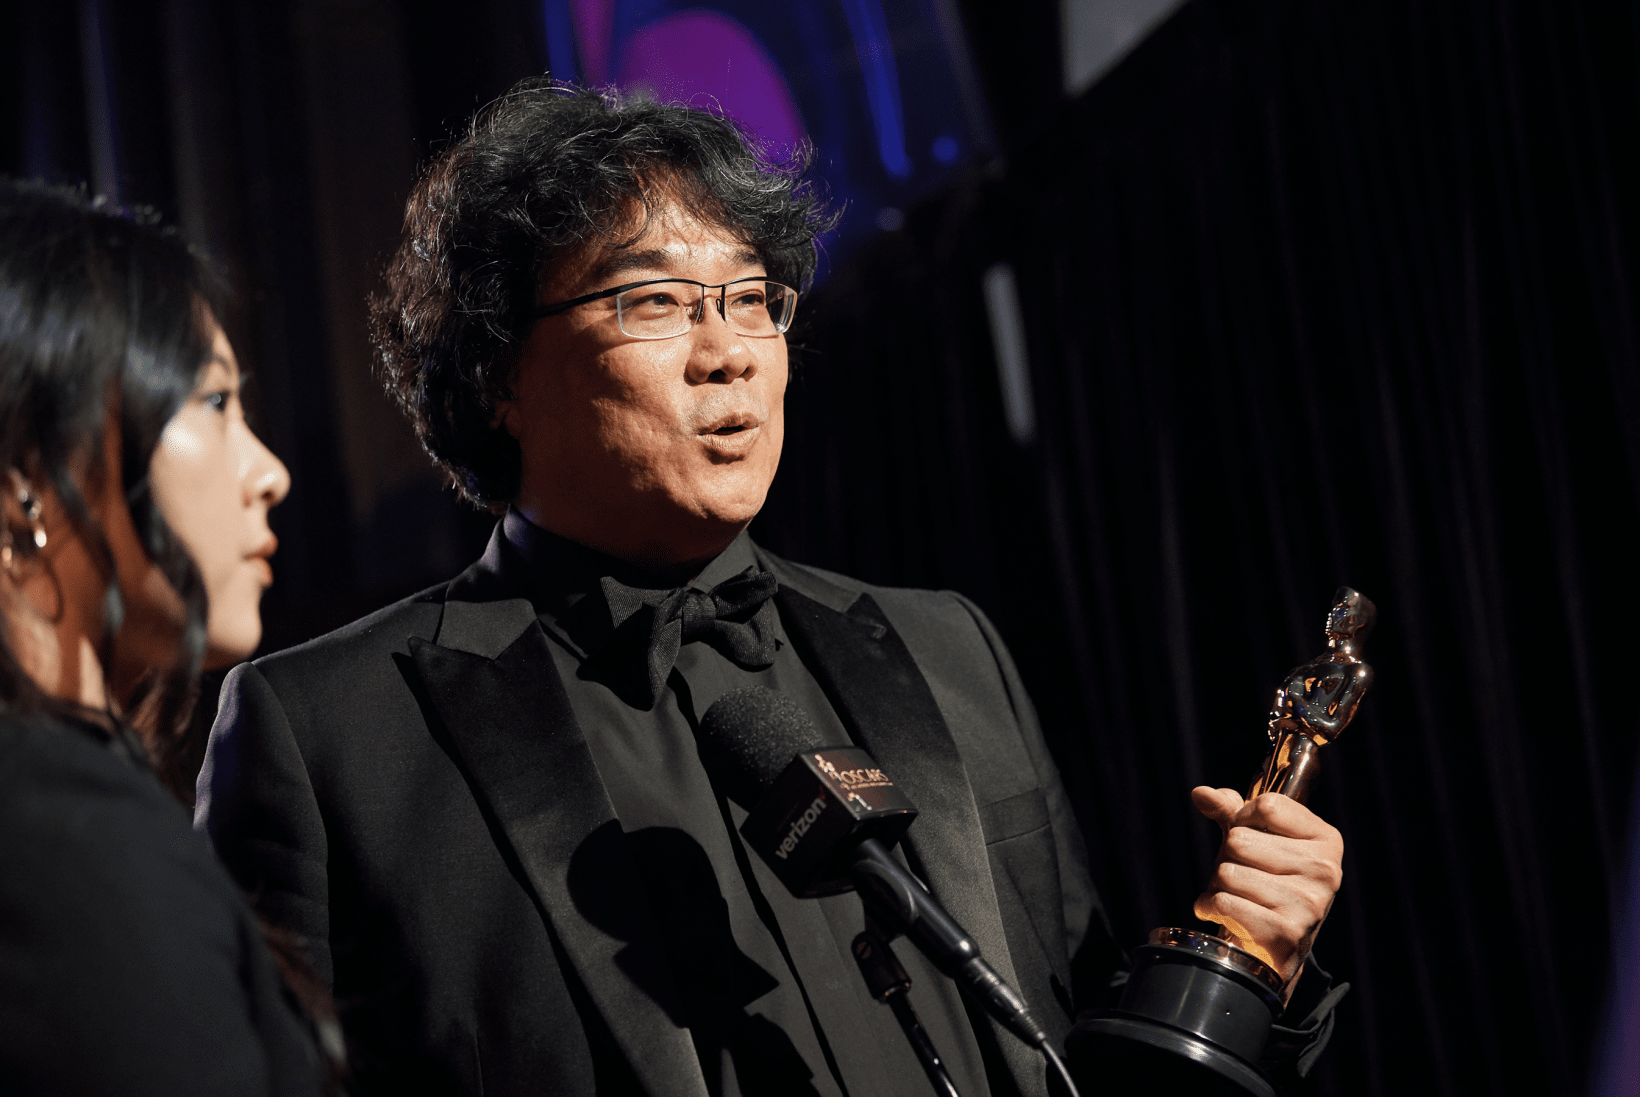 The ML model failed to predict Bong Joon-ho's best director and best film awards for Parasite